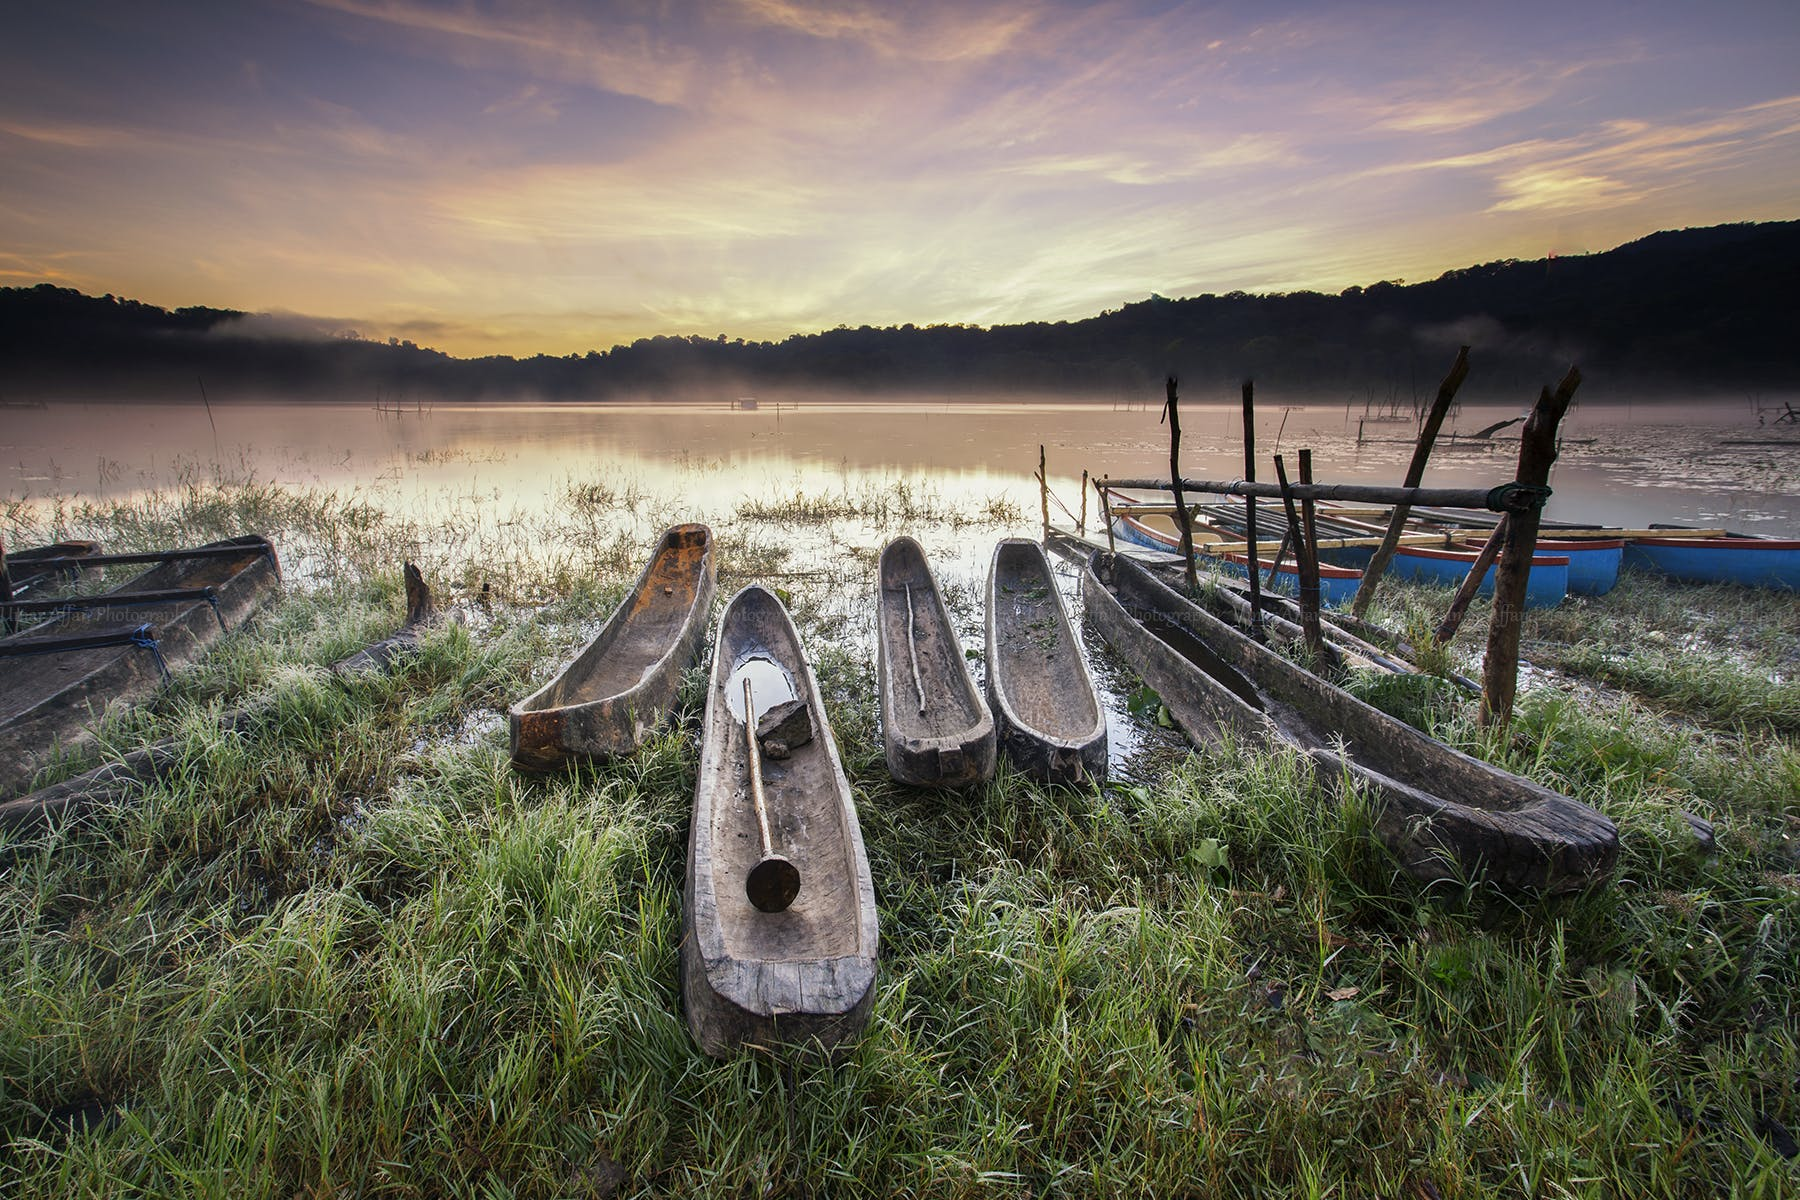 Canoes on Body of Water